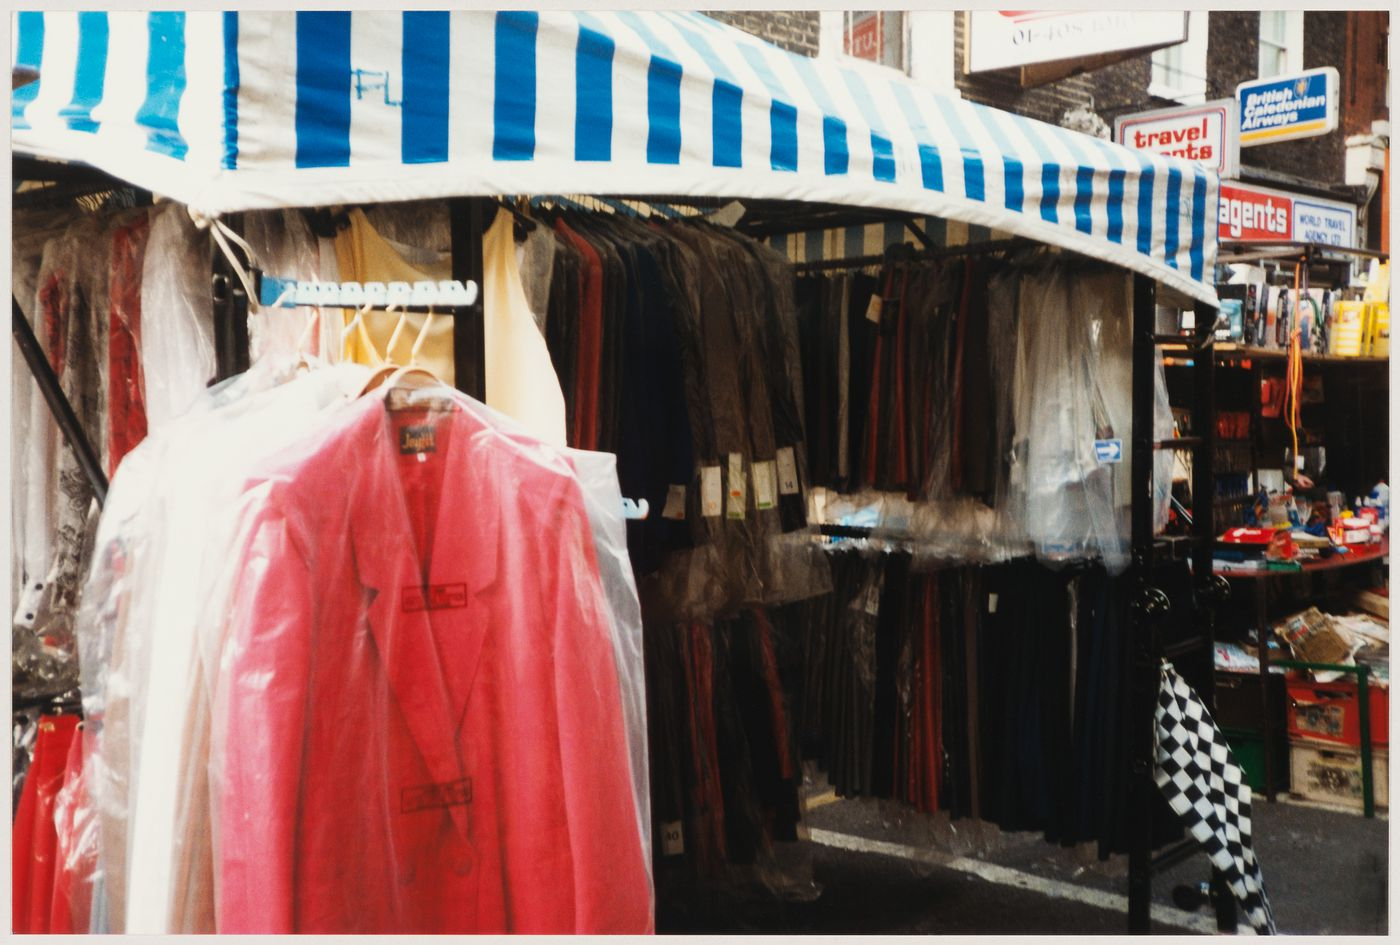 View of a clothing stall